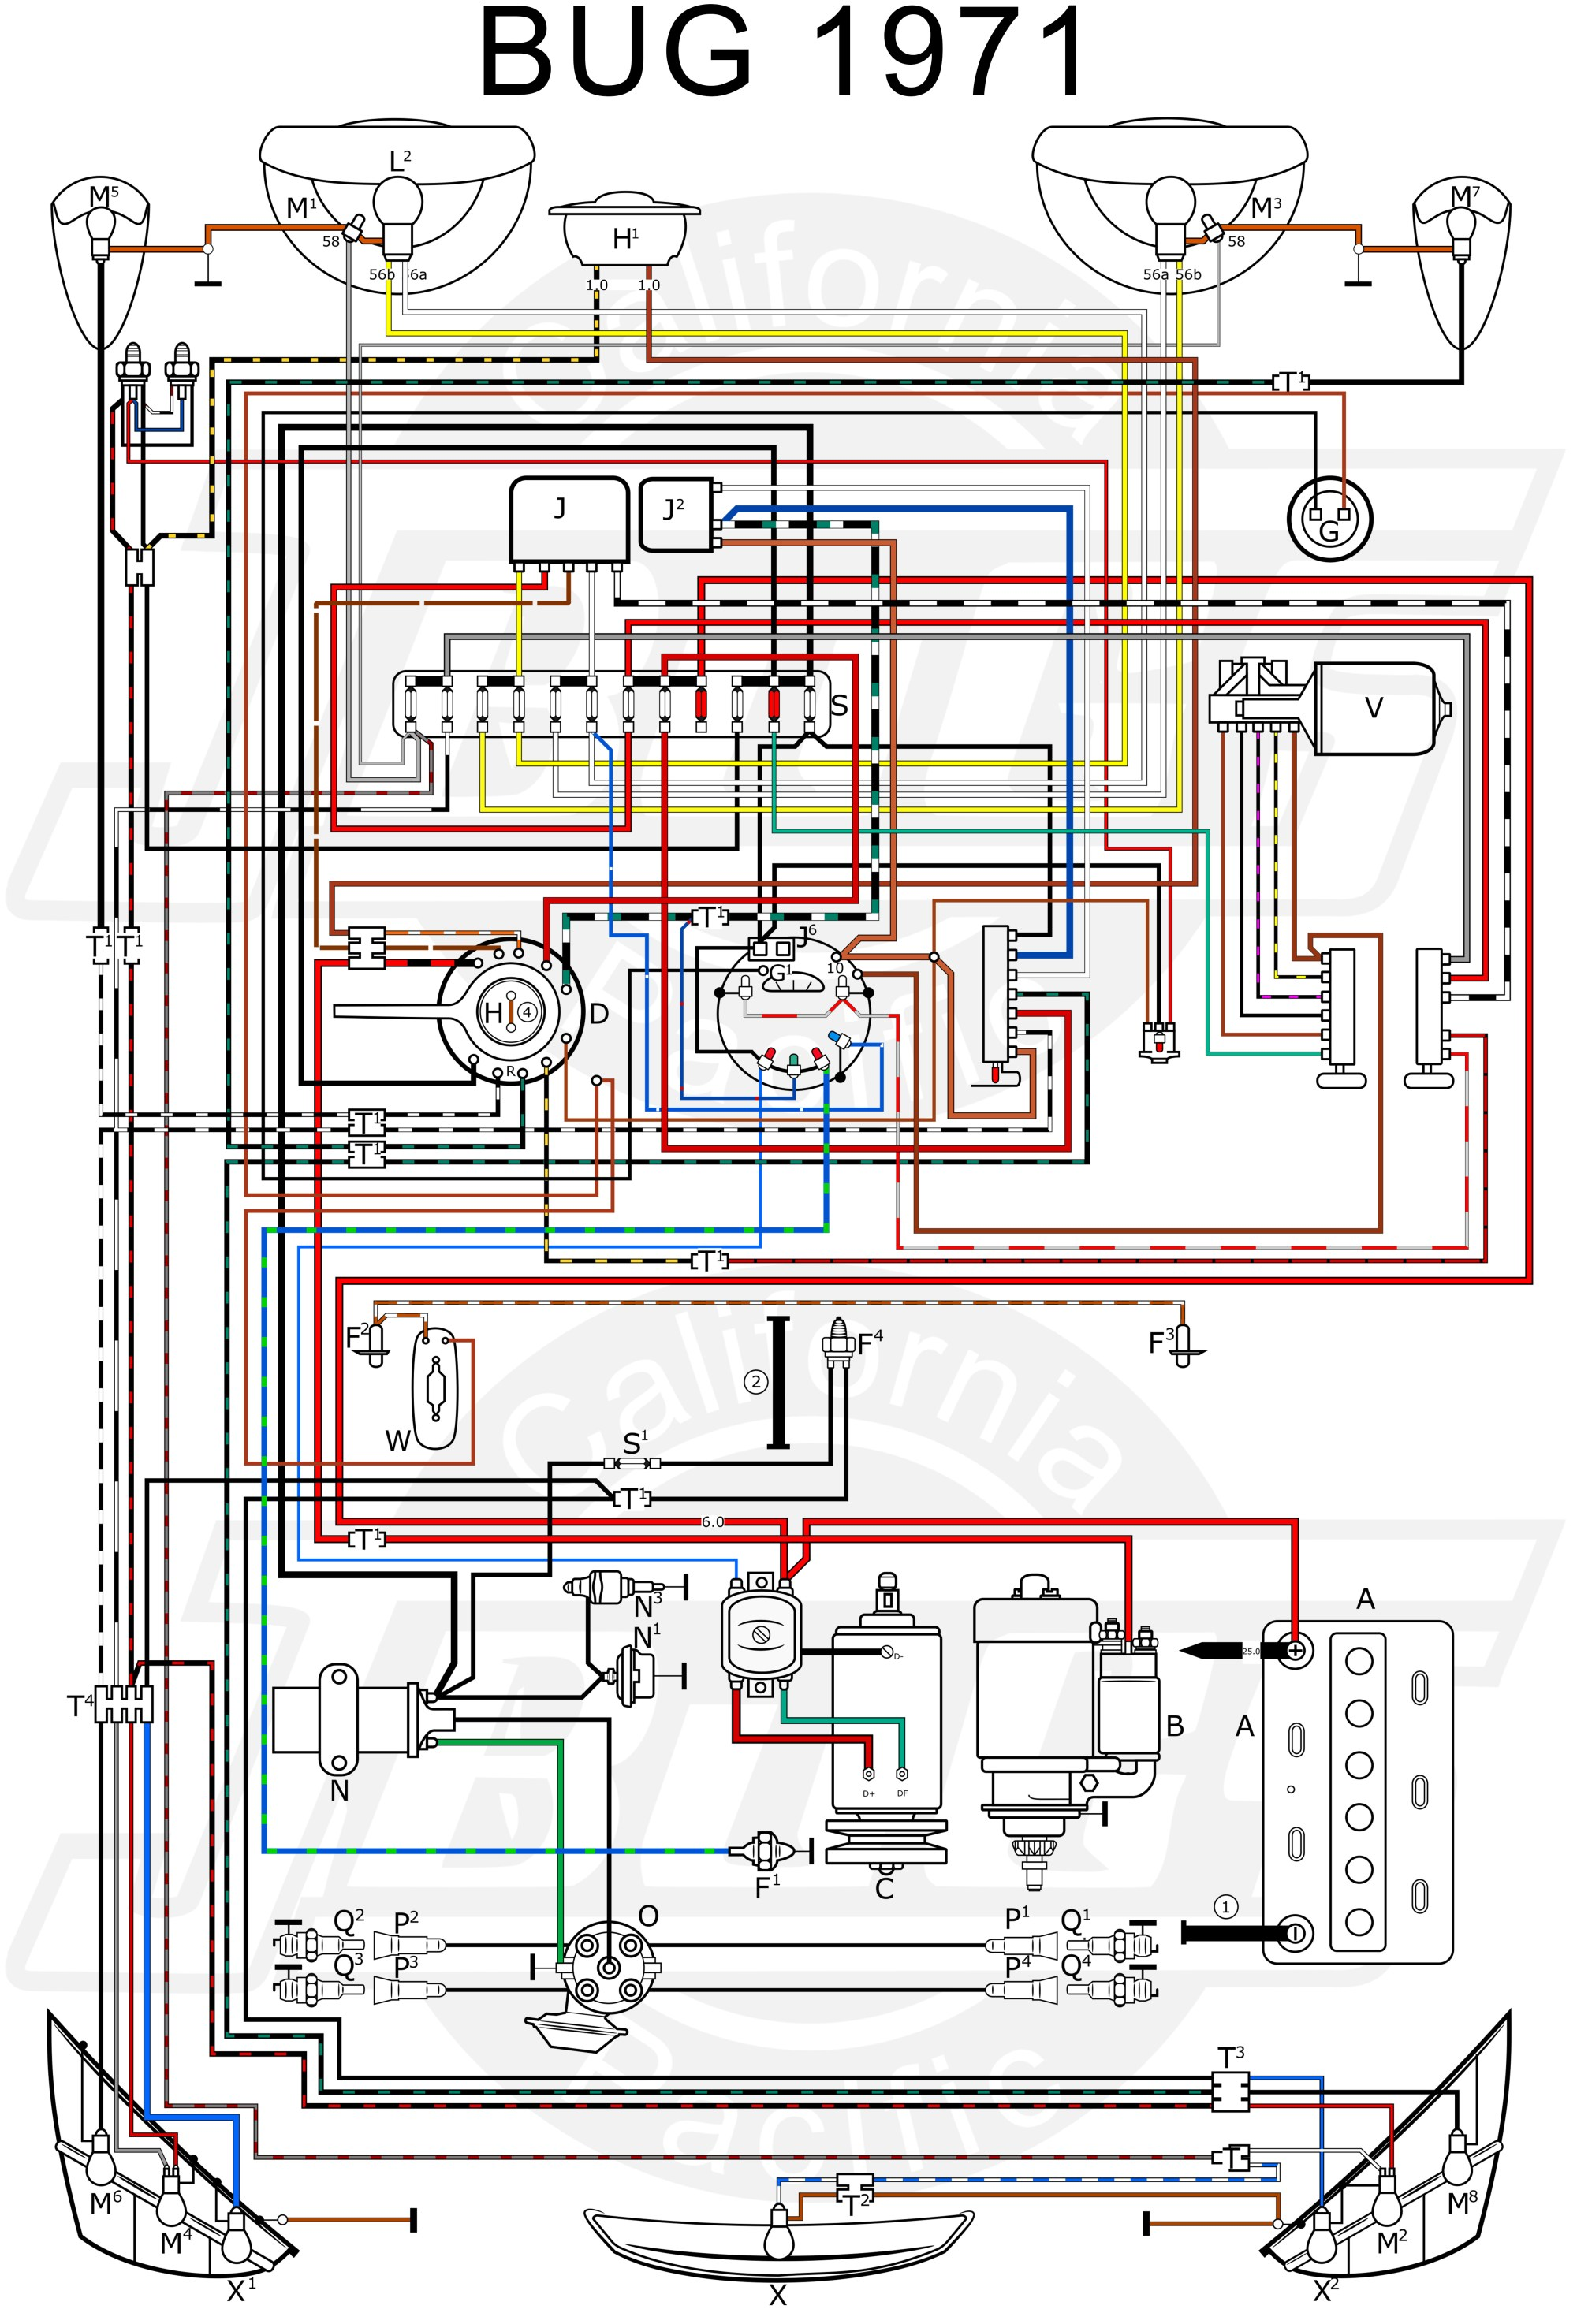 hight resolution of 1971 vw beetle ignition wiring wiring diagram expert wiring diagram for 1971 super beetle